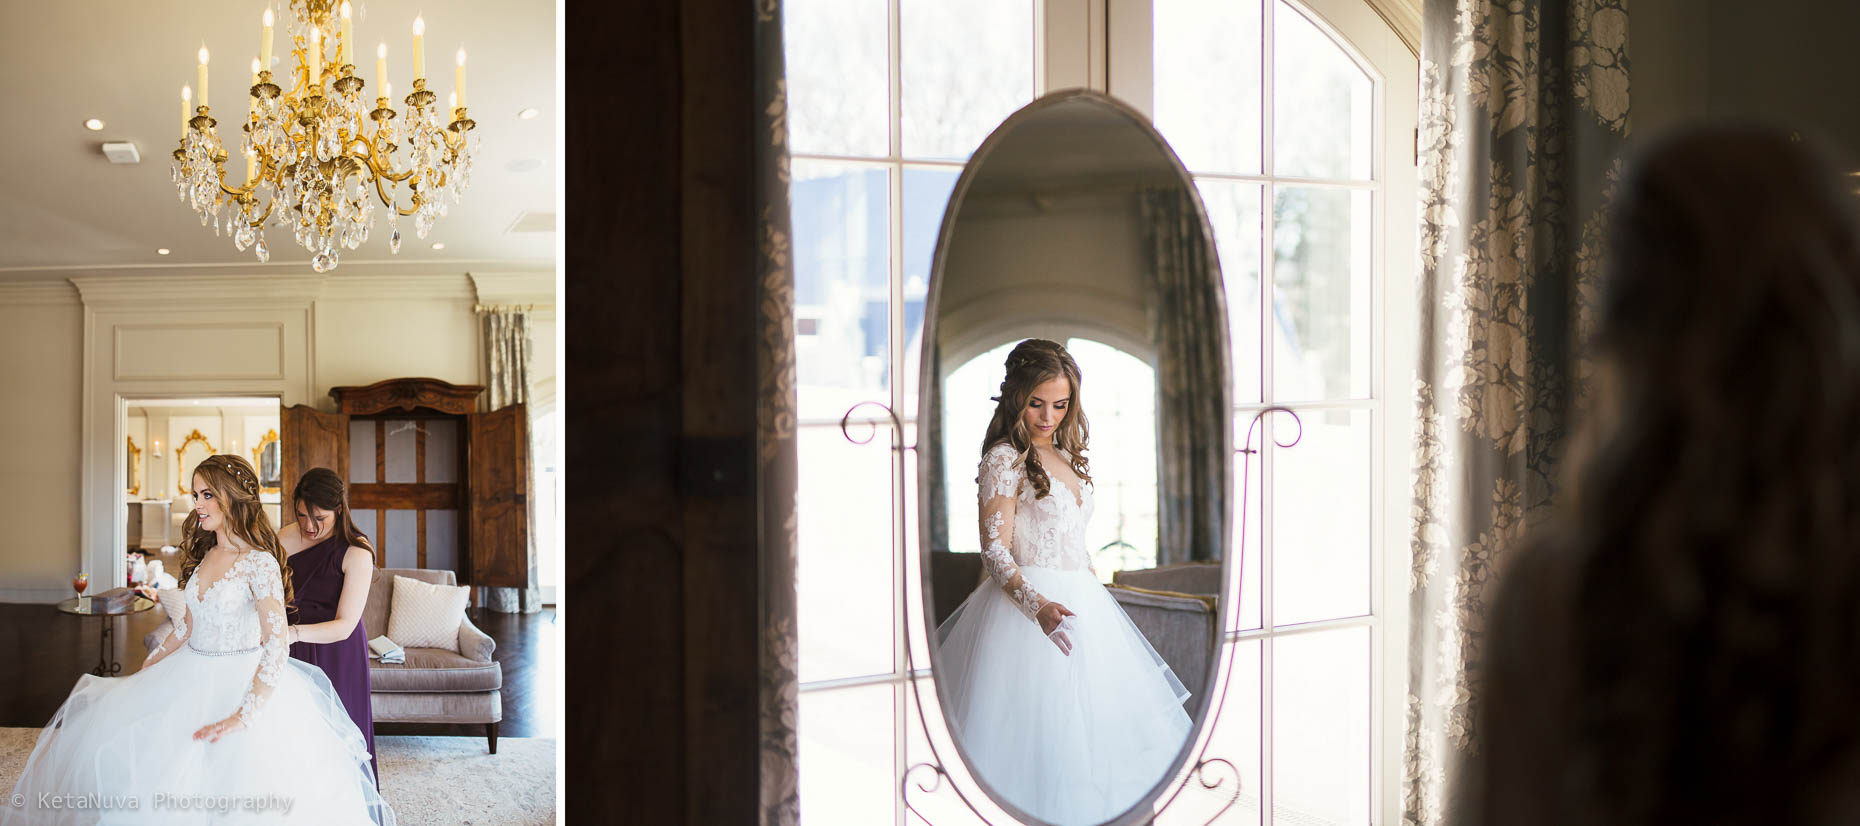 Getting ready pictures - Park Chateau Estate wedding